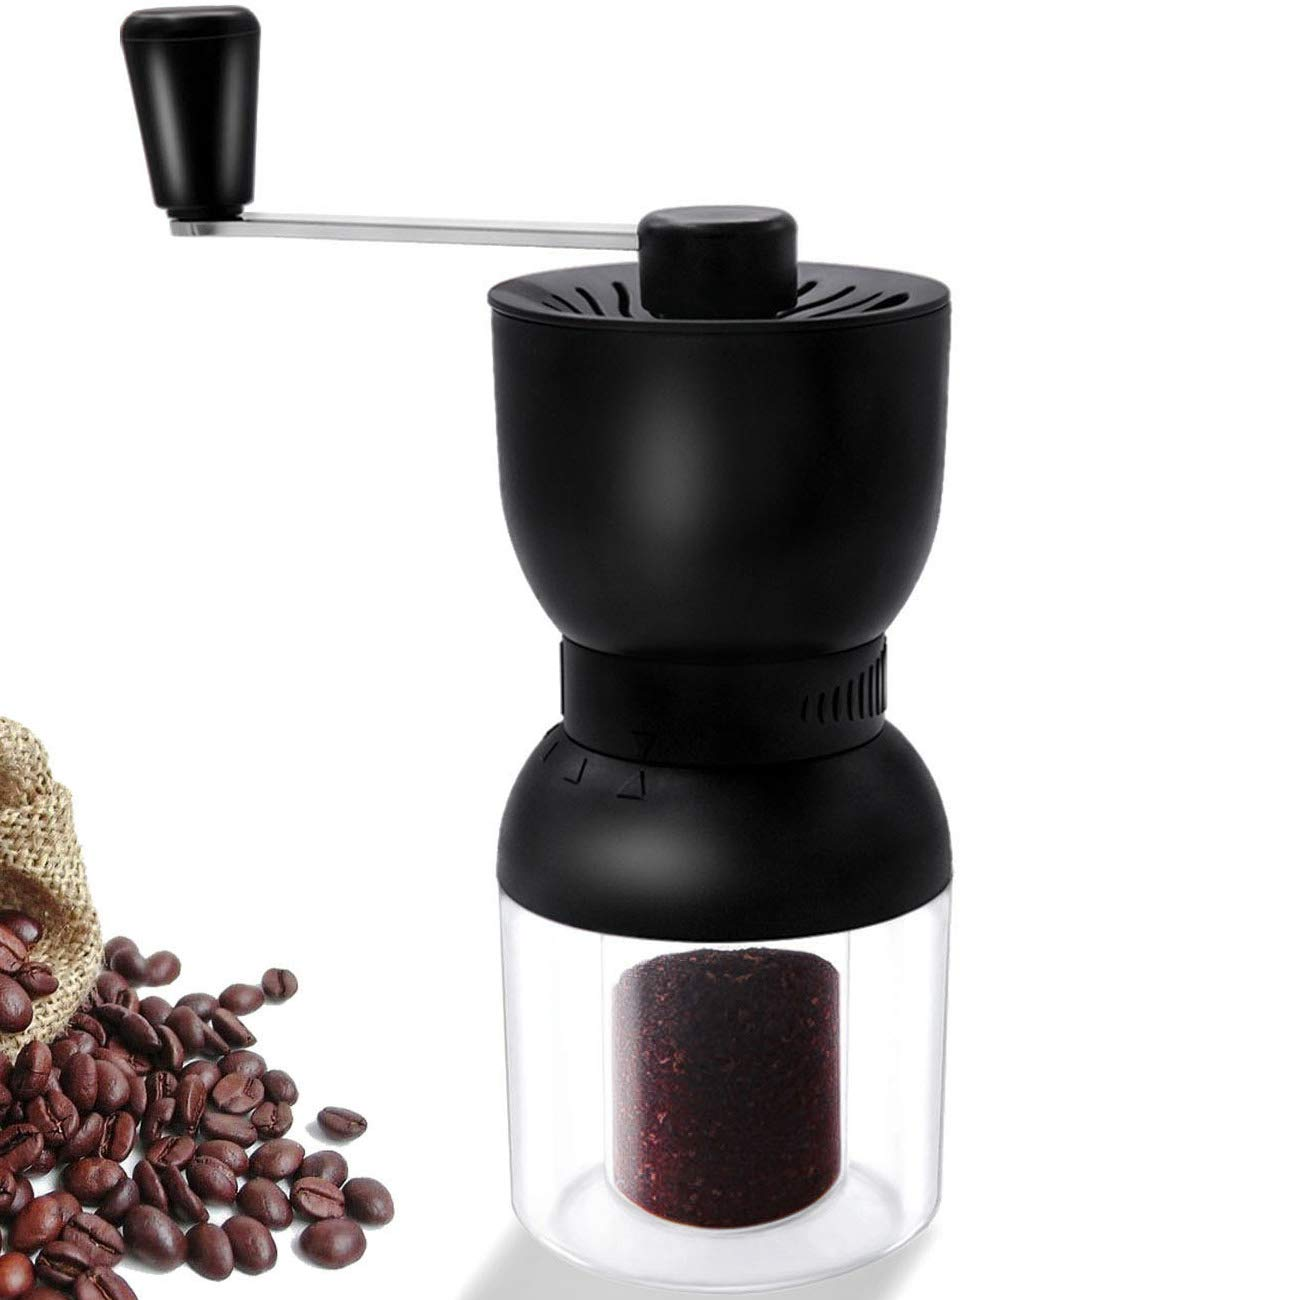 Coffee Grinder Manual, LHS Ceramic Coffee Mill with Fine Conical Ceramic Burrs Black,2 Size Clear Glass Jars Infinitely Adjustment Nut Grind Removable Hand Crank Coffee Mill Quiet and Portable for Travel by LHS